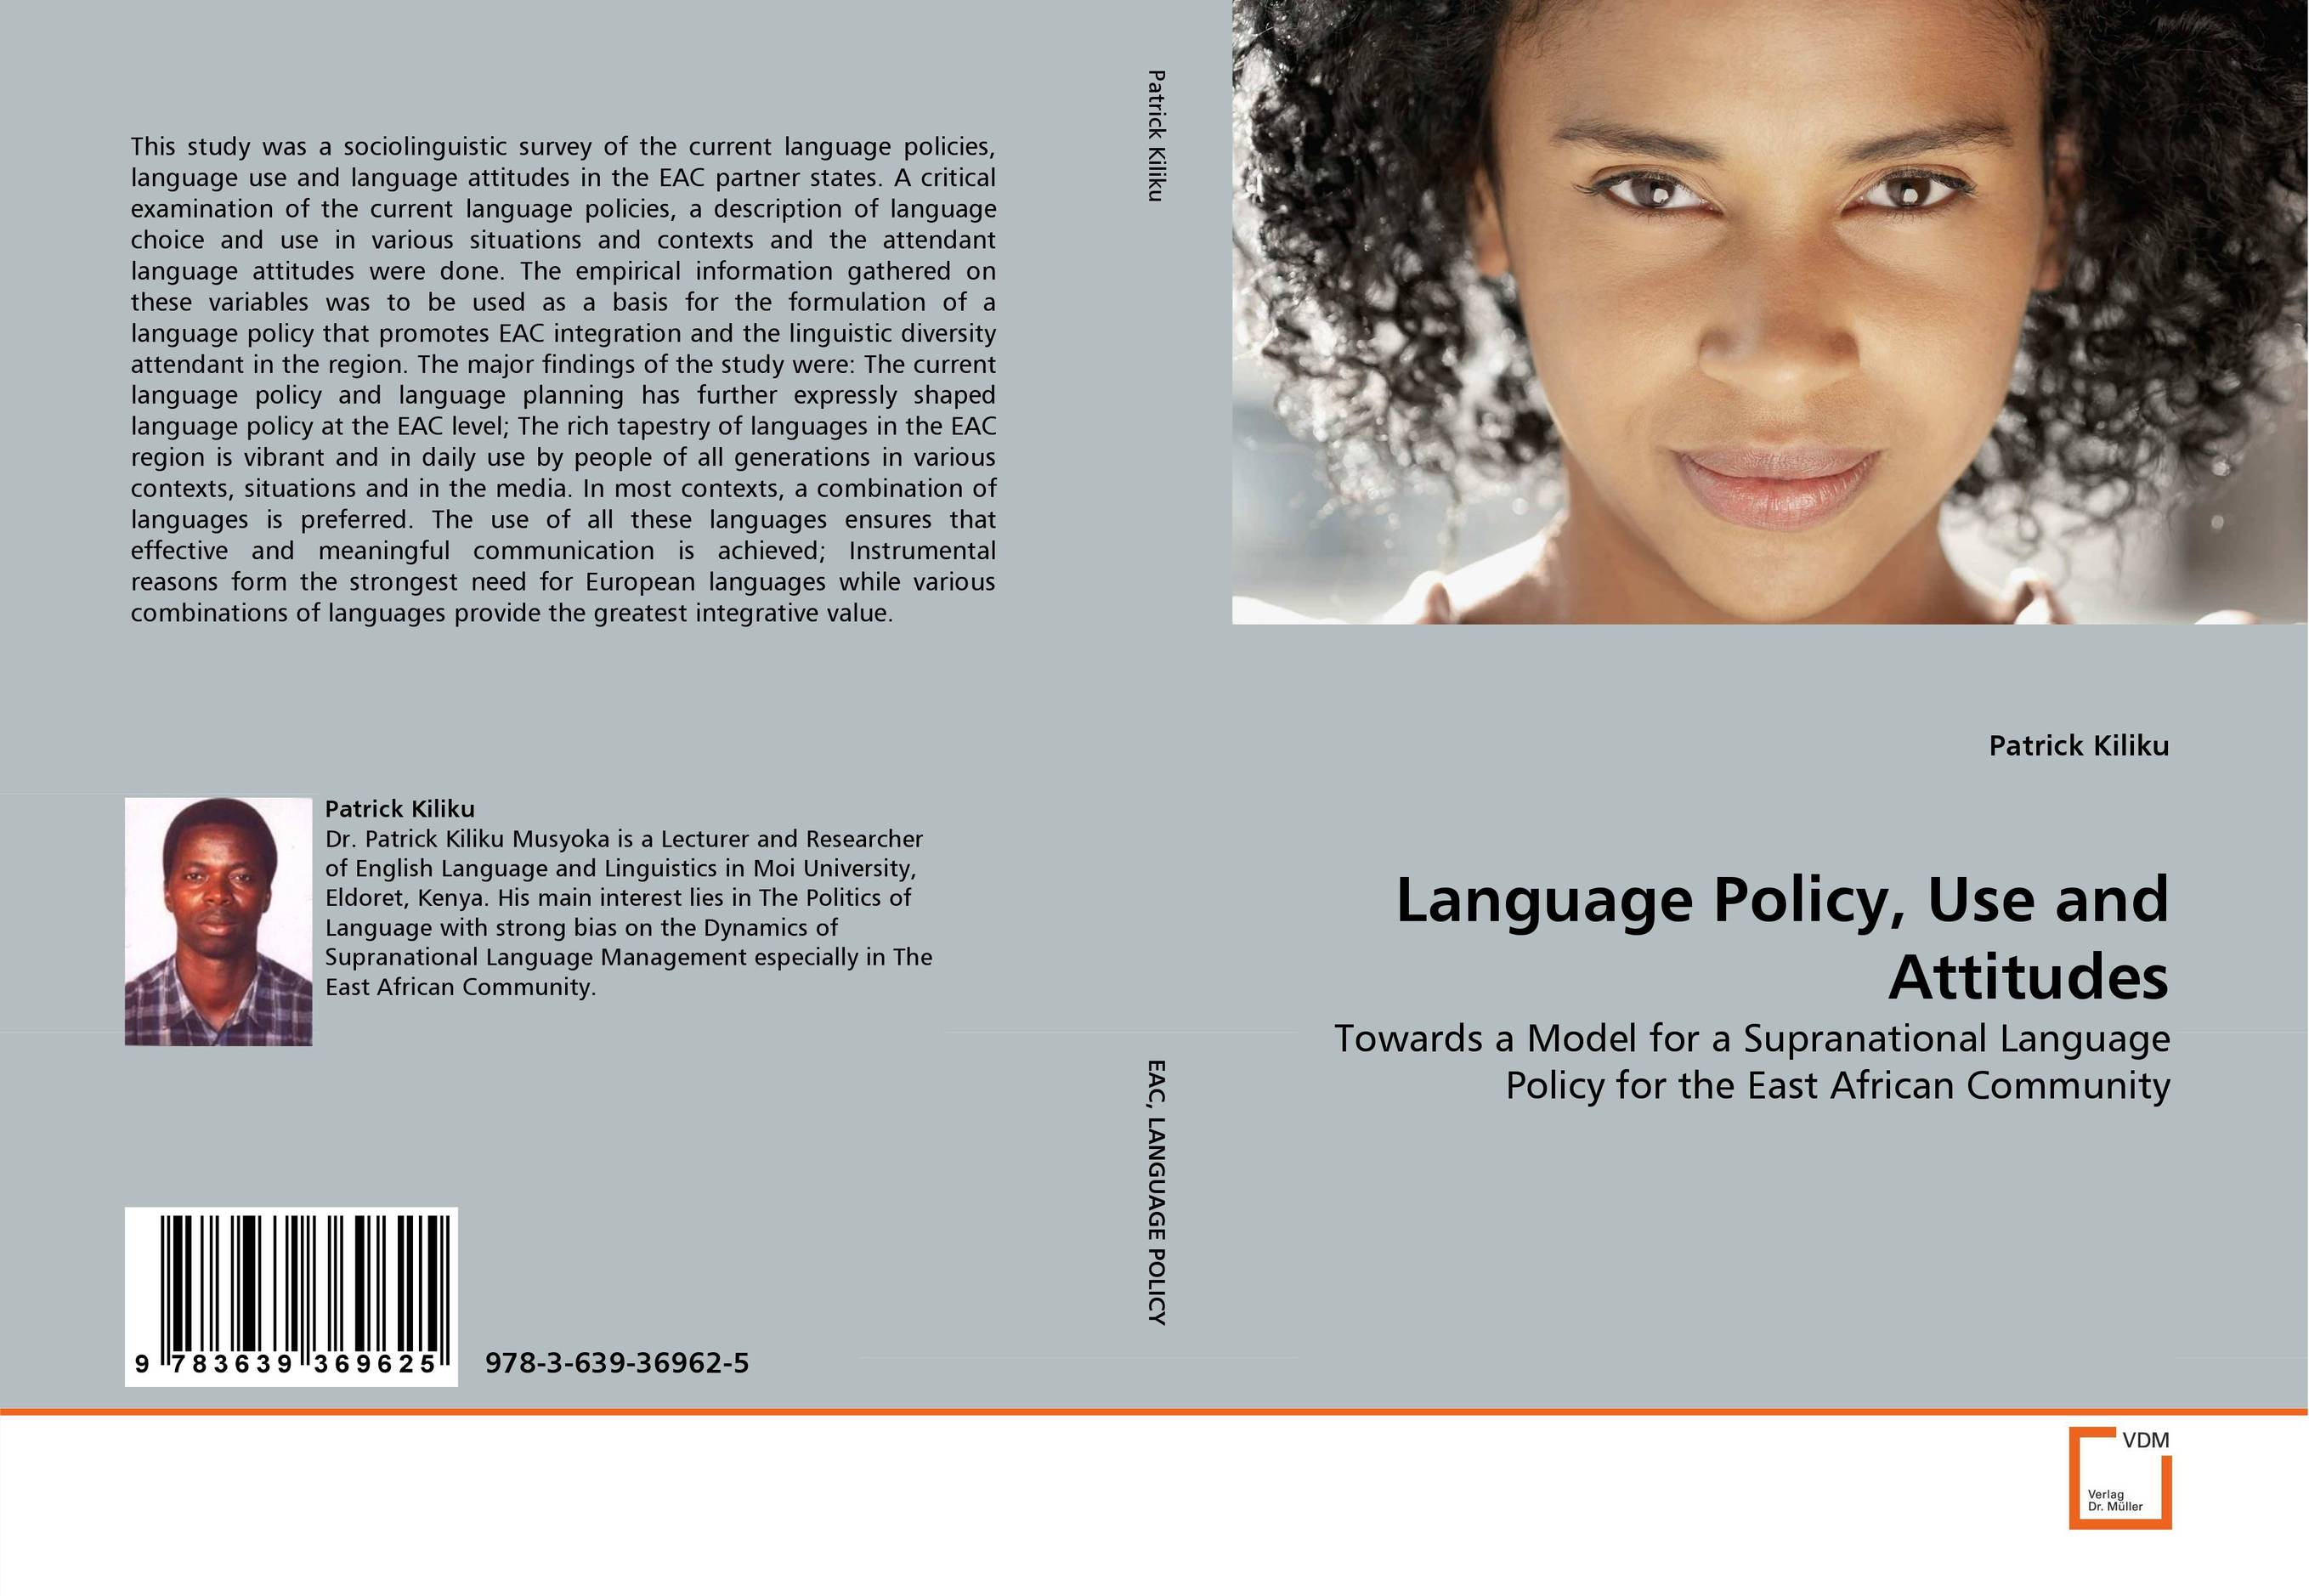 Language Policy, Use and Attitudes купить